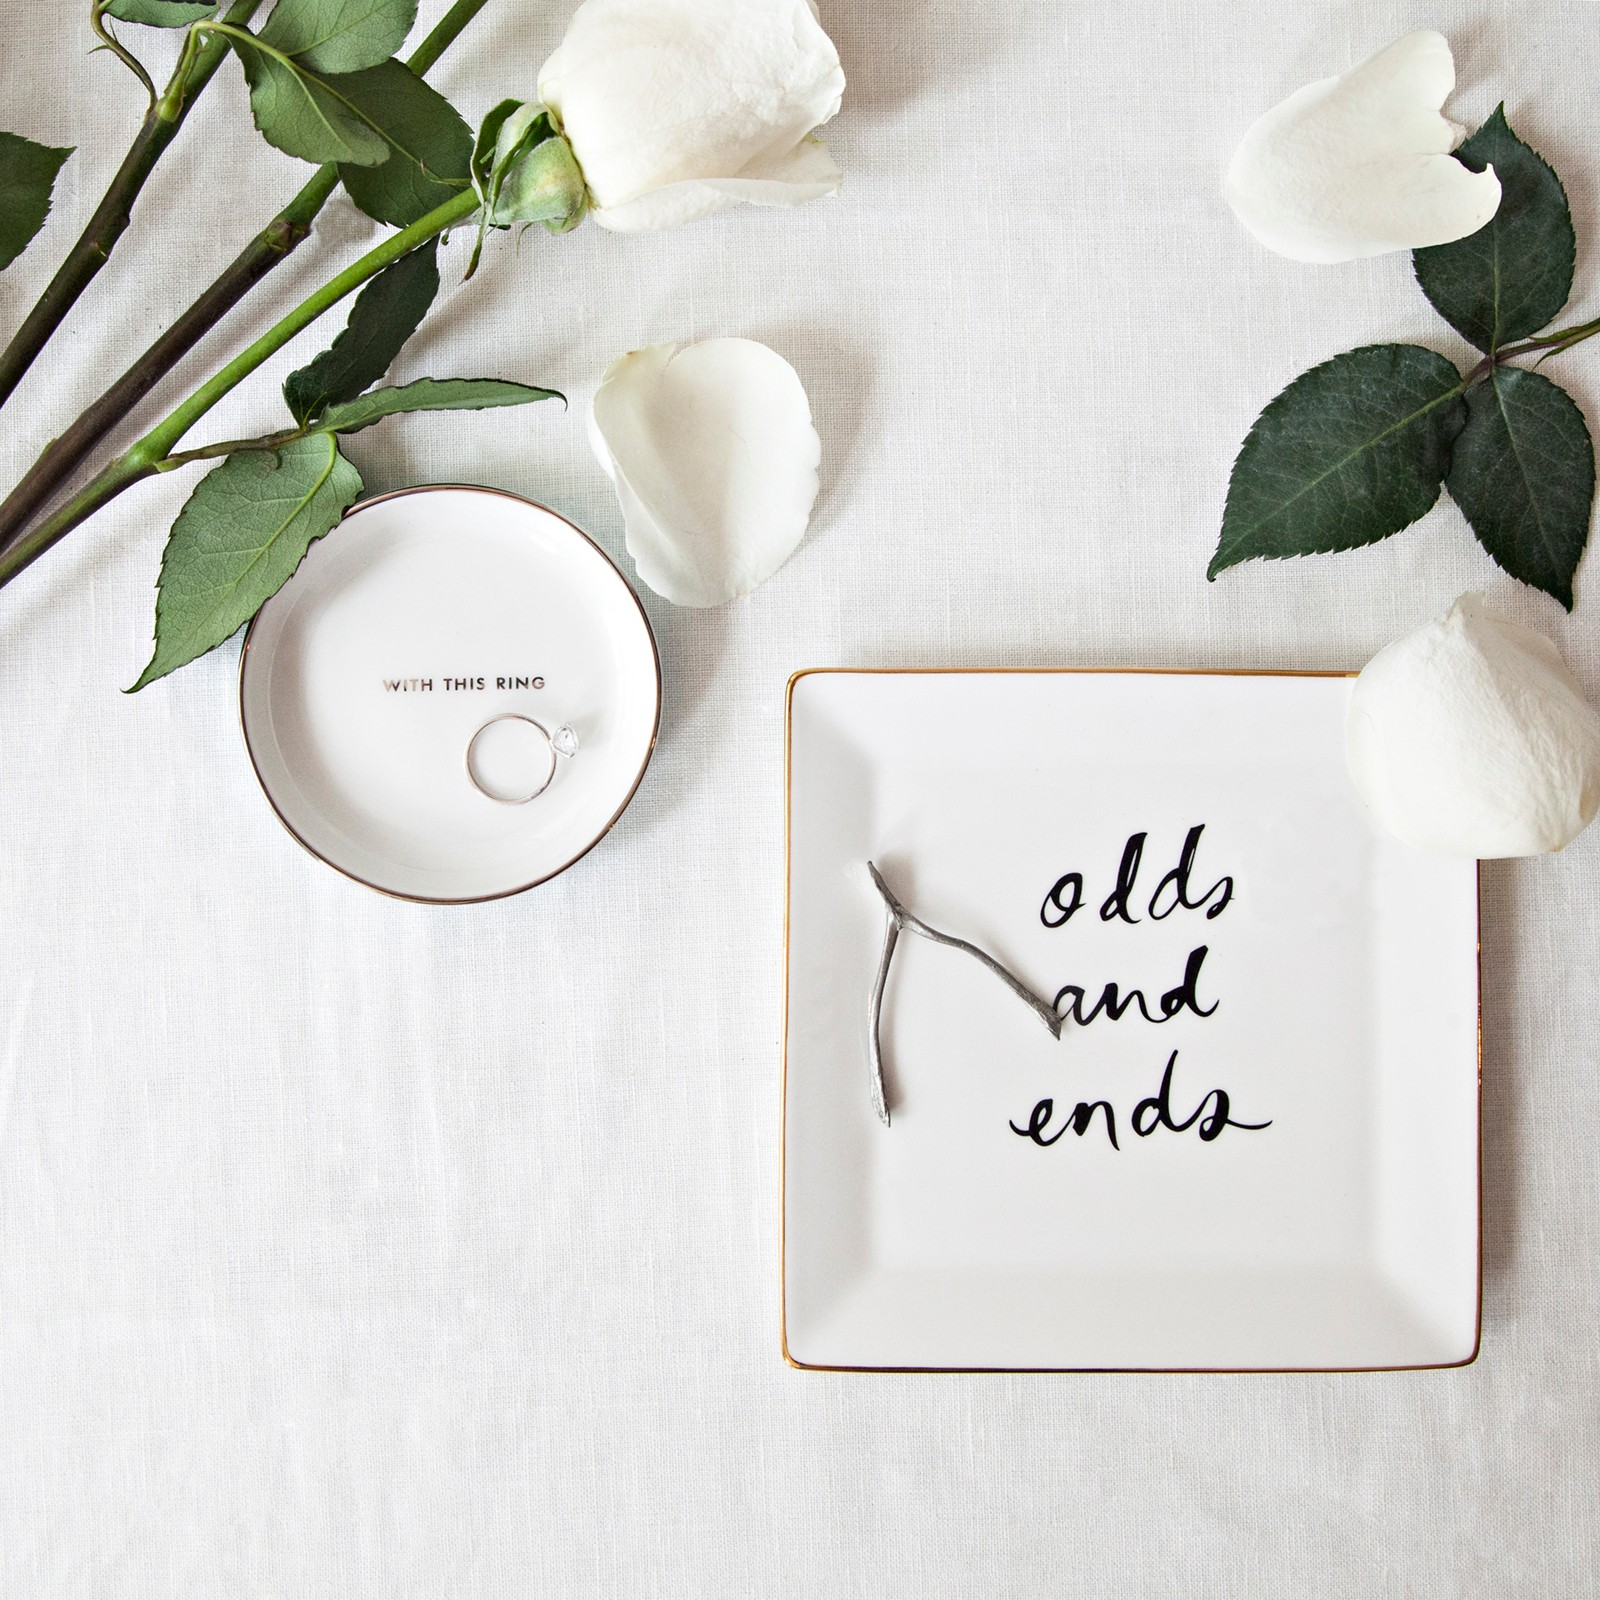 Kelcie Rudman and John Ibbetson\u0027s Wedding Registry on Zola | Zola